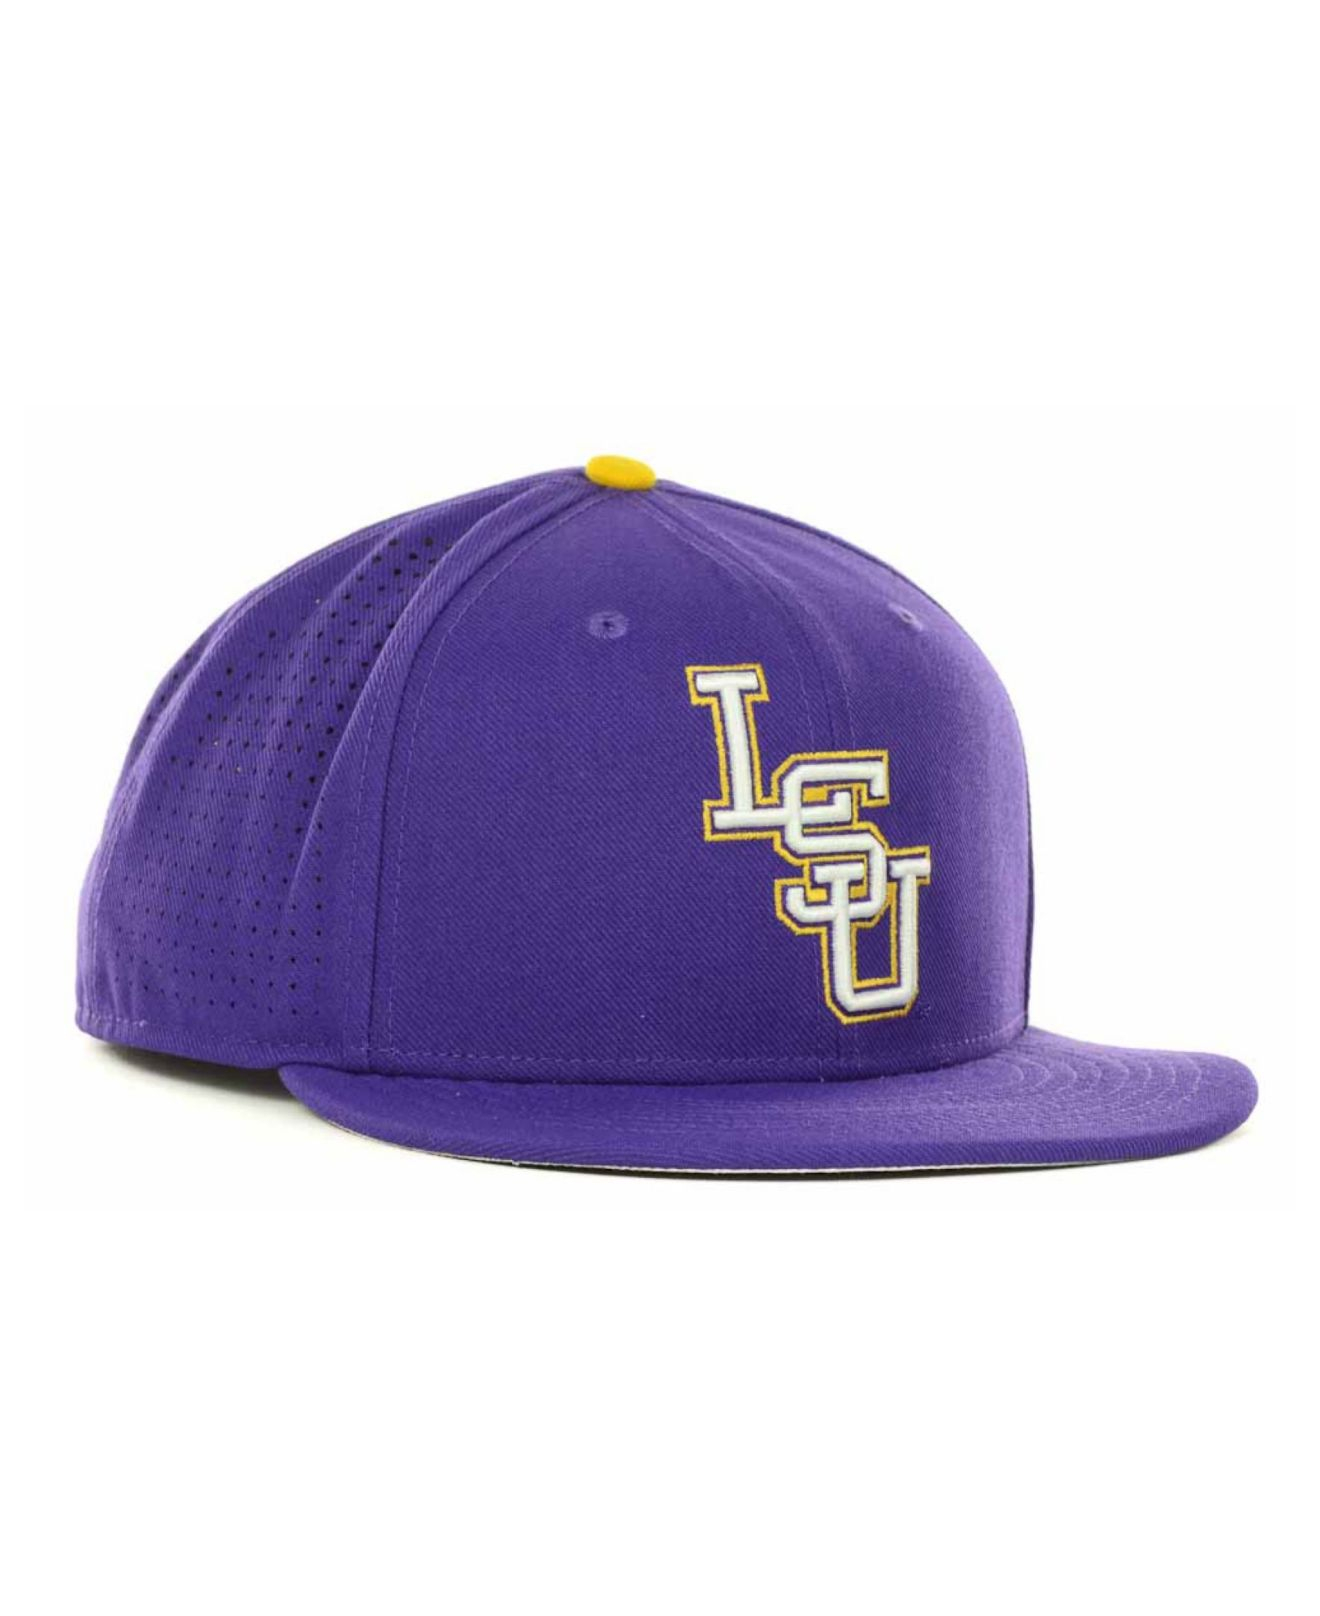 ... cheap lyst nike lsu tigers ncaa authentic vapor fitted cap in purple  for men 7cbc9 80aed 40ca31c4006